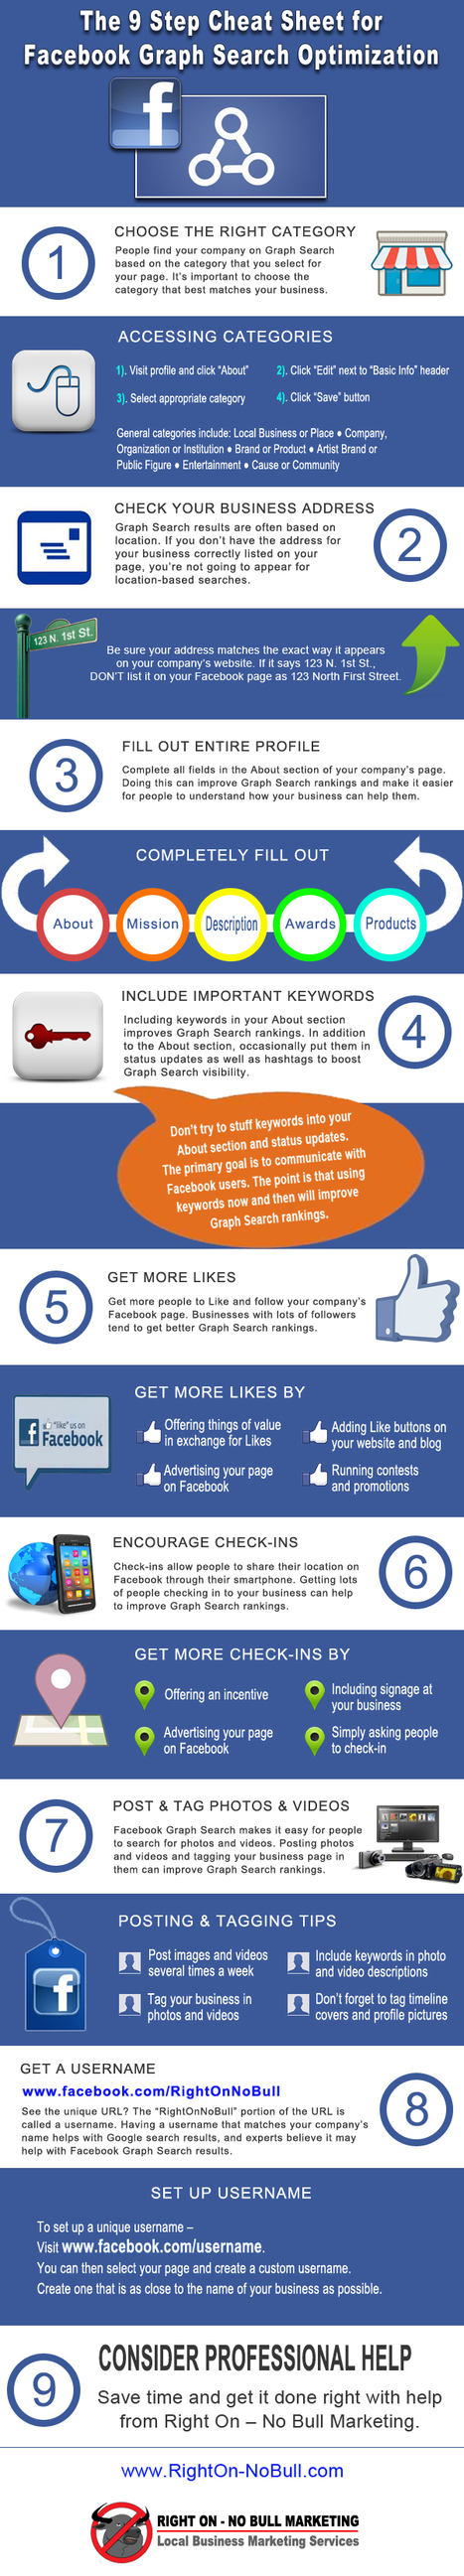 9 Steps for Facebook Graph Search Optimization [INFOGRAPHIC] | COMMUNITY MANAGEMENT - CM2 | Scoop.it